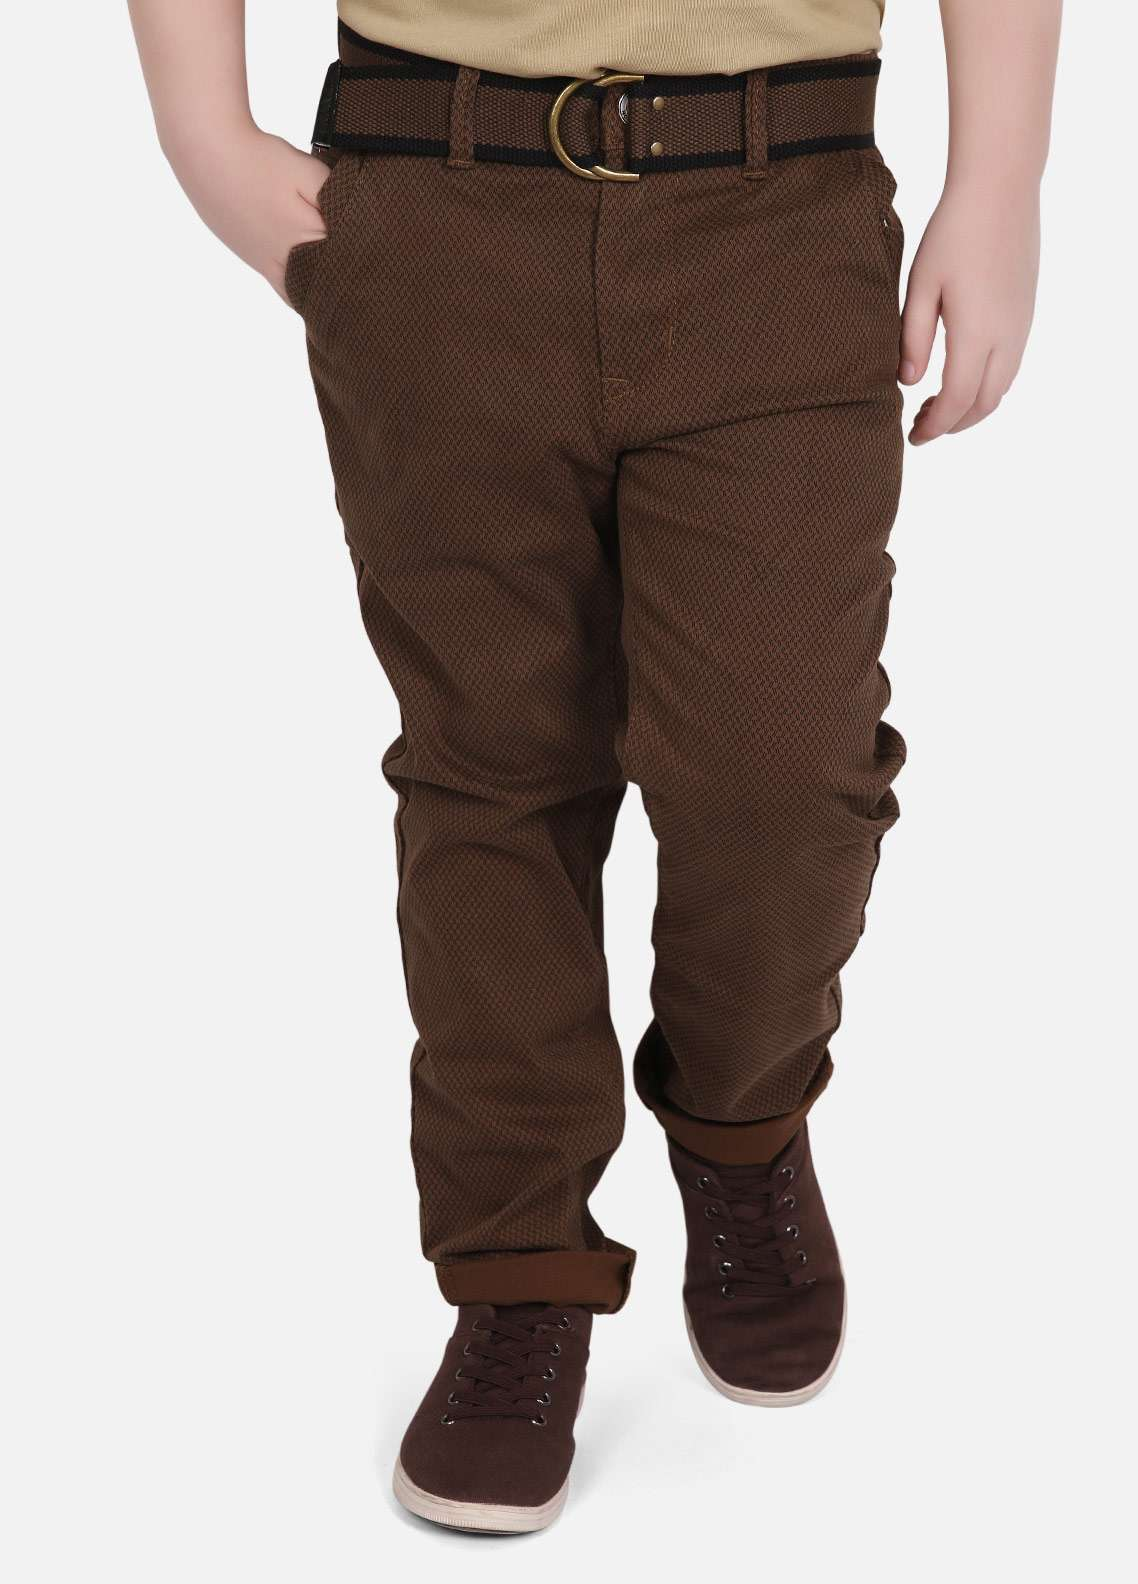 Edenrobe Jeans Plain Texture Boys Pants - Brown EDK18P 5715